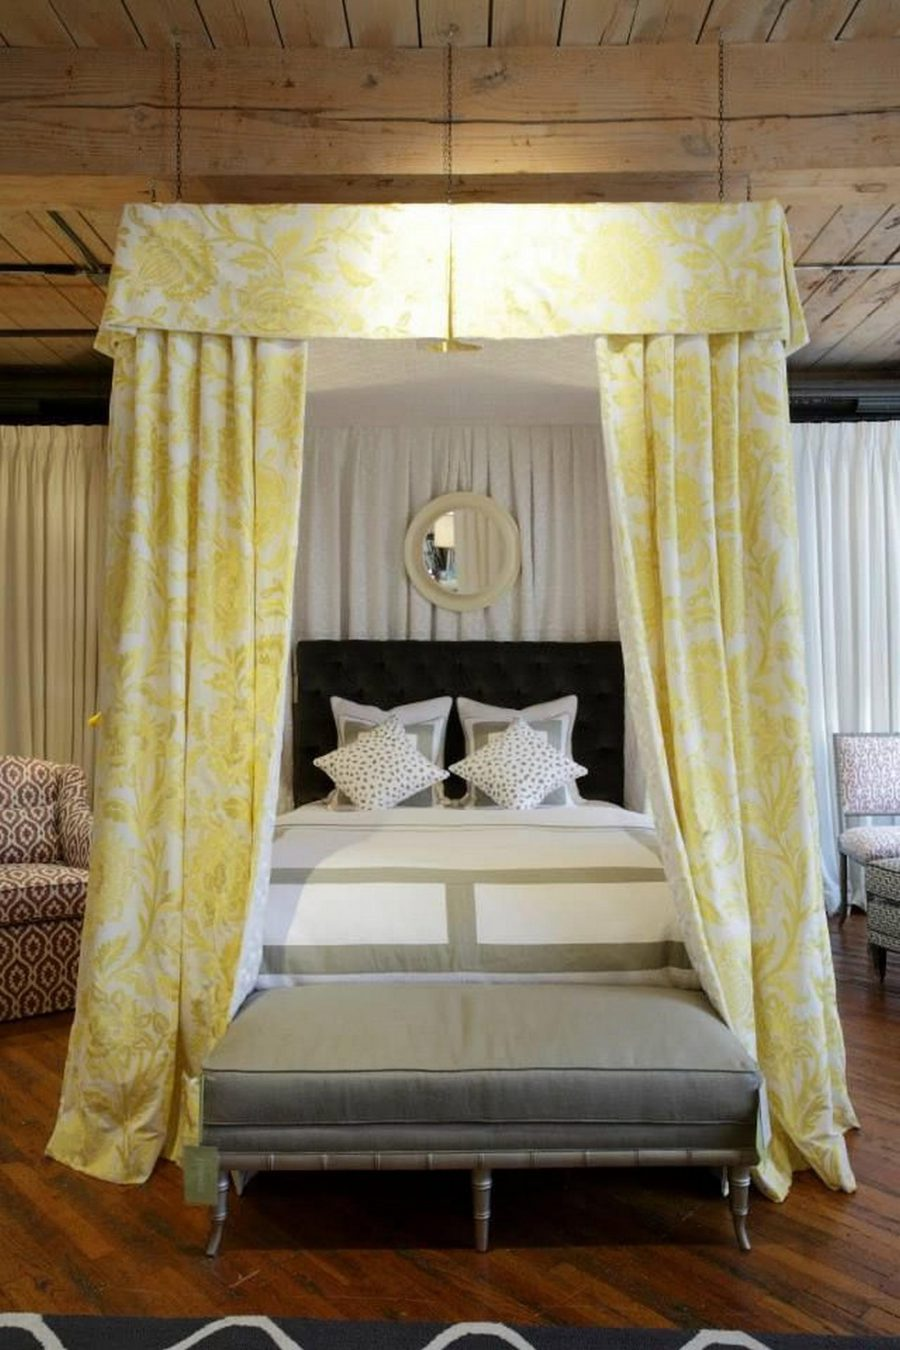 Canopy-Bed-With-High-Headboard-And-Yellow-Fabric-Curtains